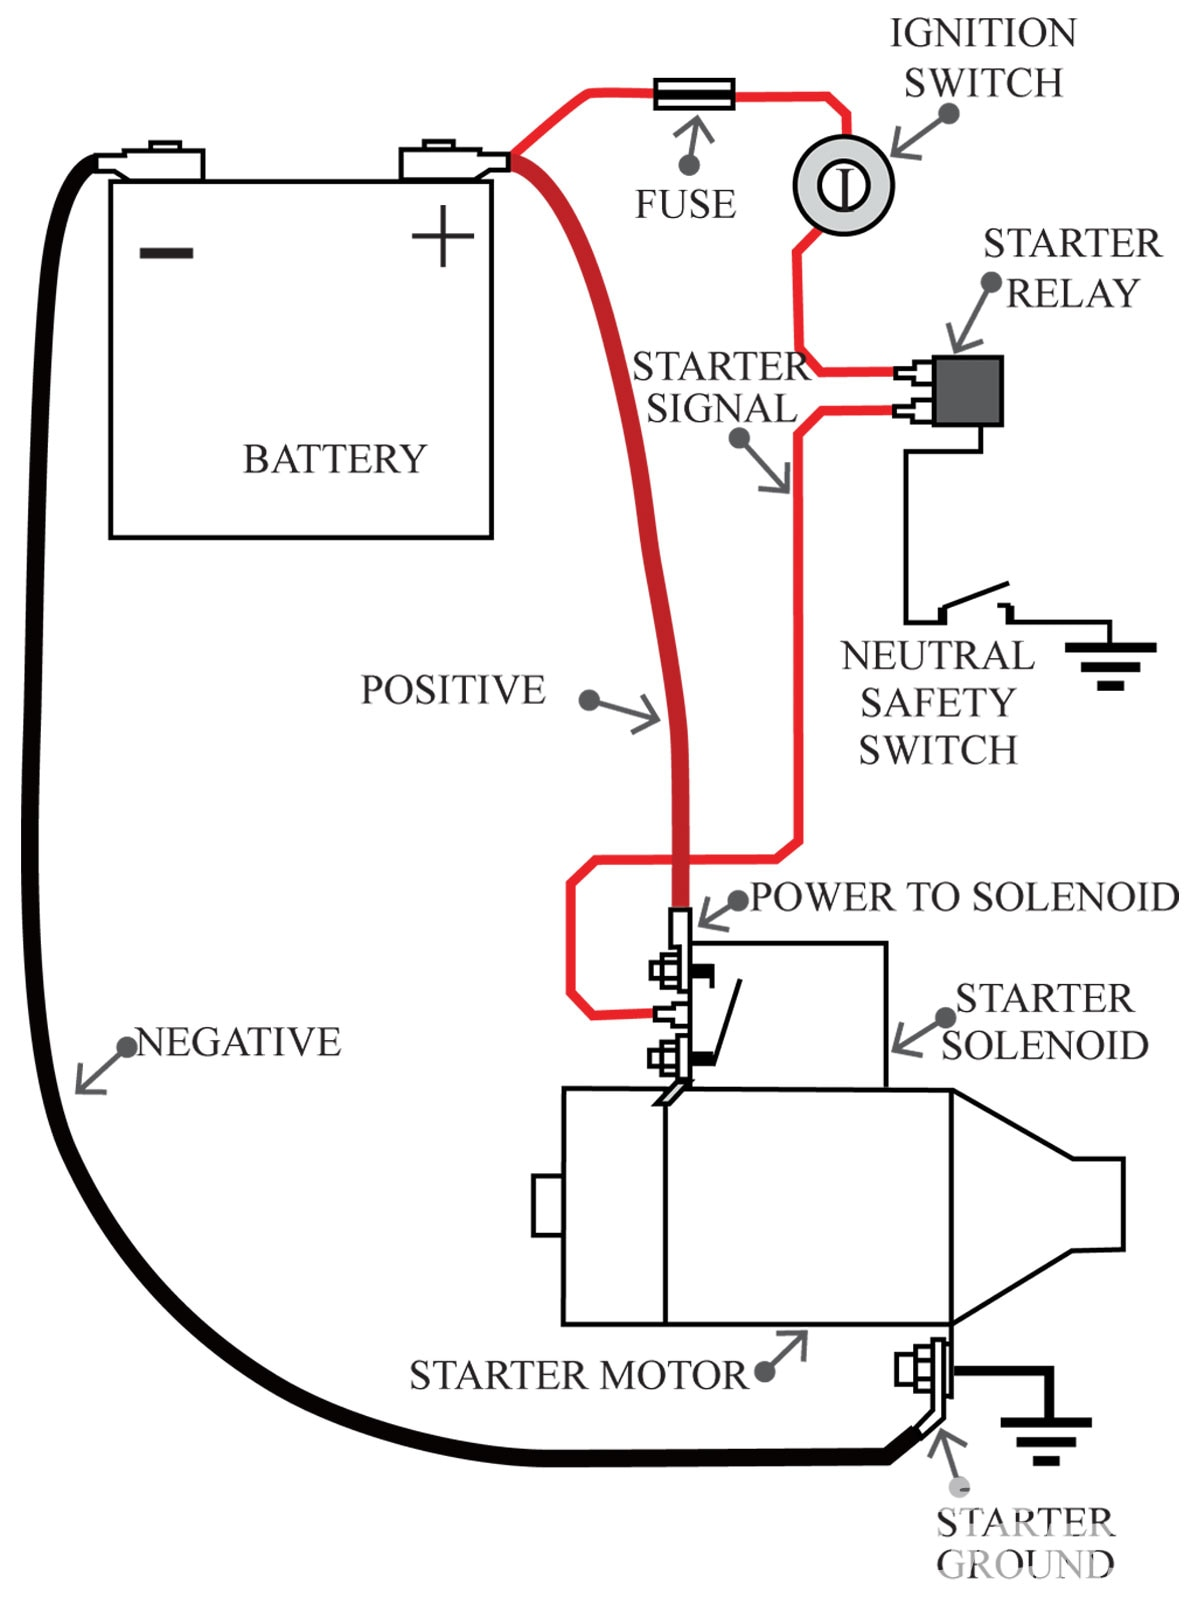 57 Chevy Starter Wiring Diagram. Chevy. Auto Wiring Diagram